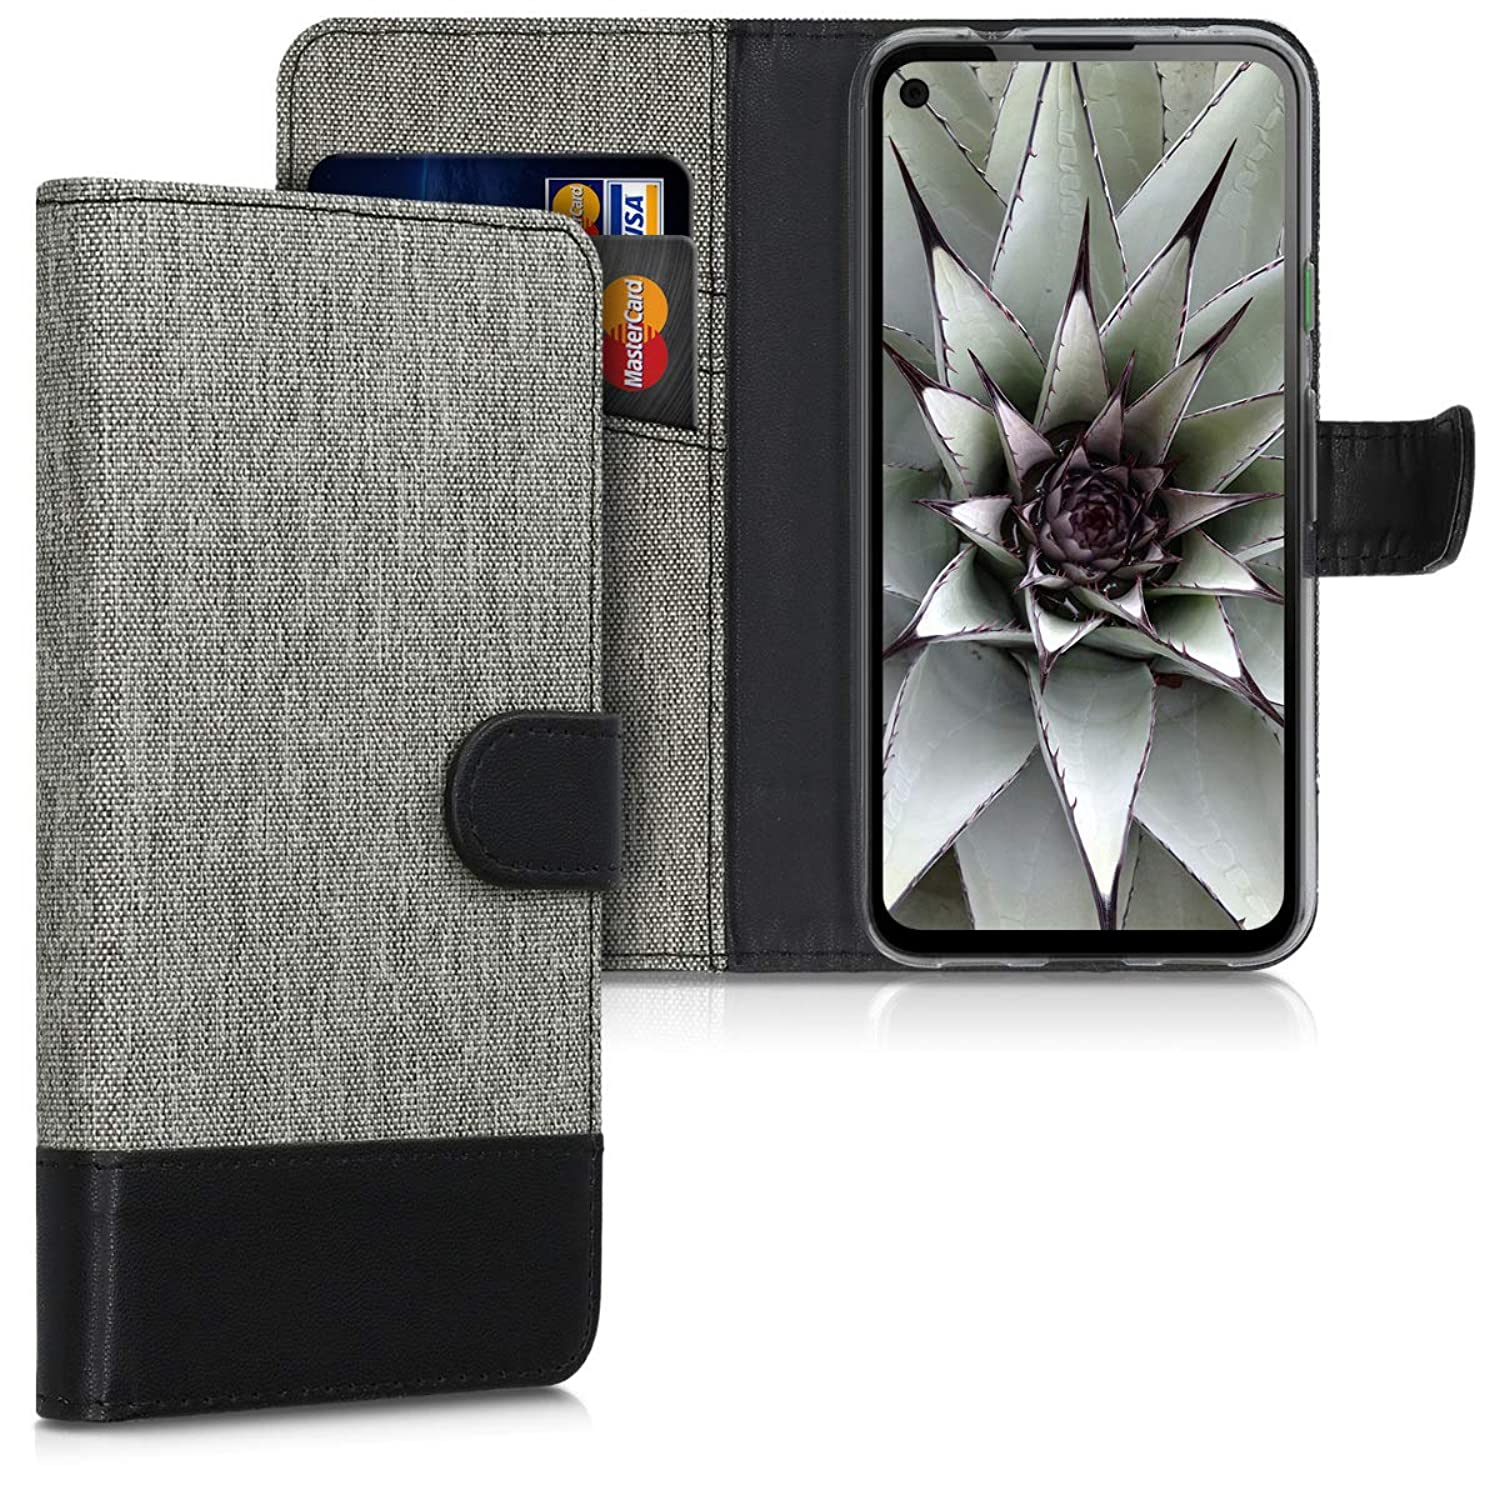 PU Leather Flip Cover with Card Slots and Stand Magnolias Taupe//White//Blue Grey kwmobile Wallet Case Compatible with Google Pixel 4a